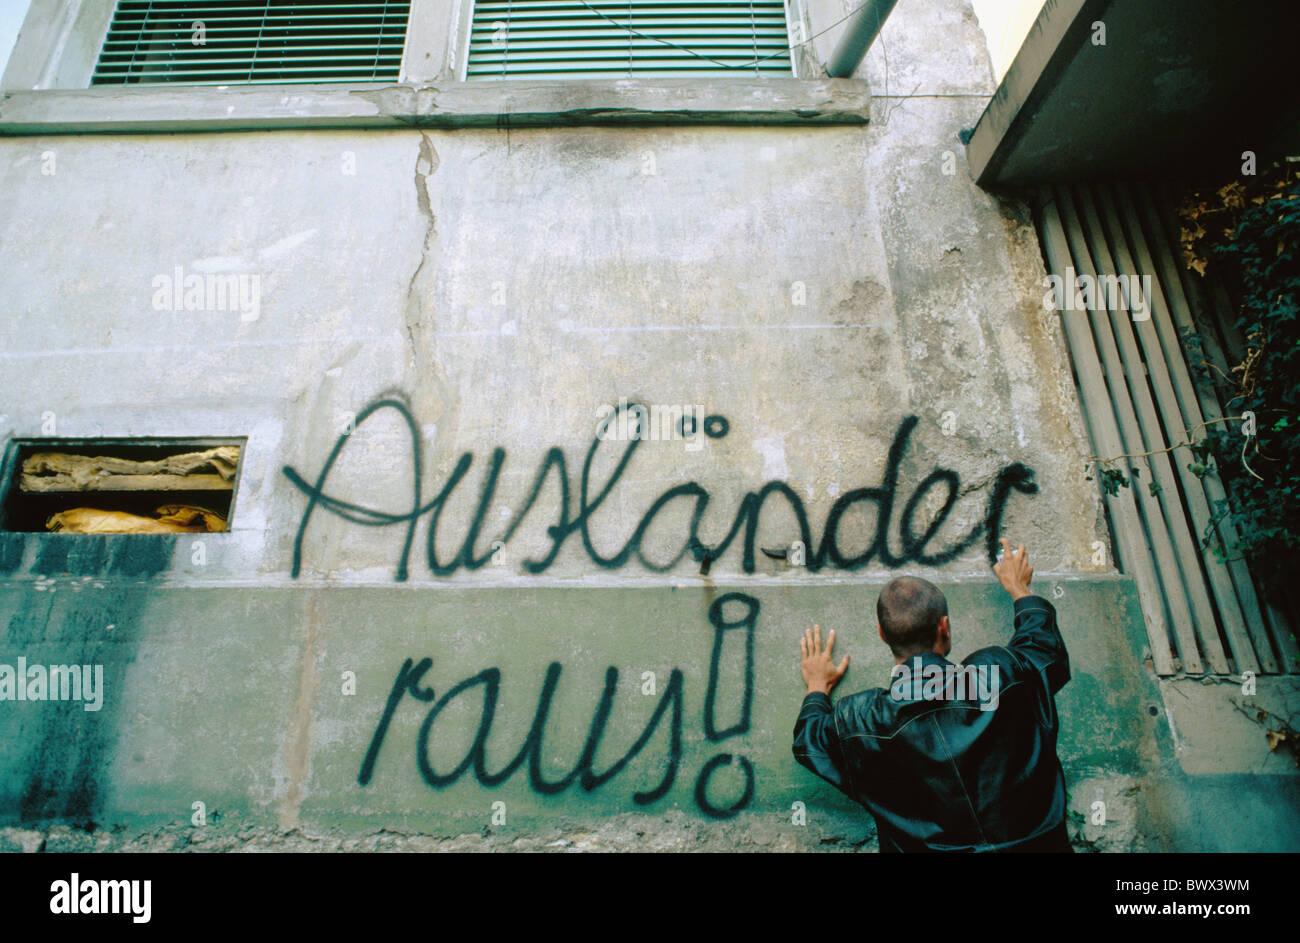 foreigners out hostility foreigners xenophobia xenophobia house wall slogan password racism skinhead socia - Stock Image